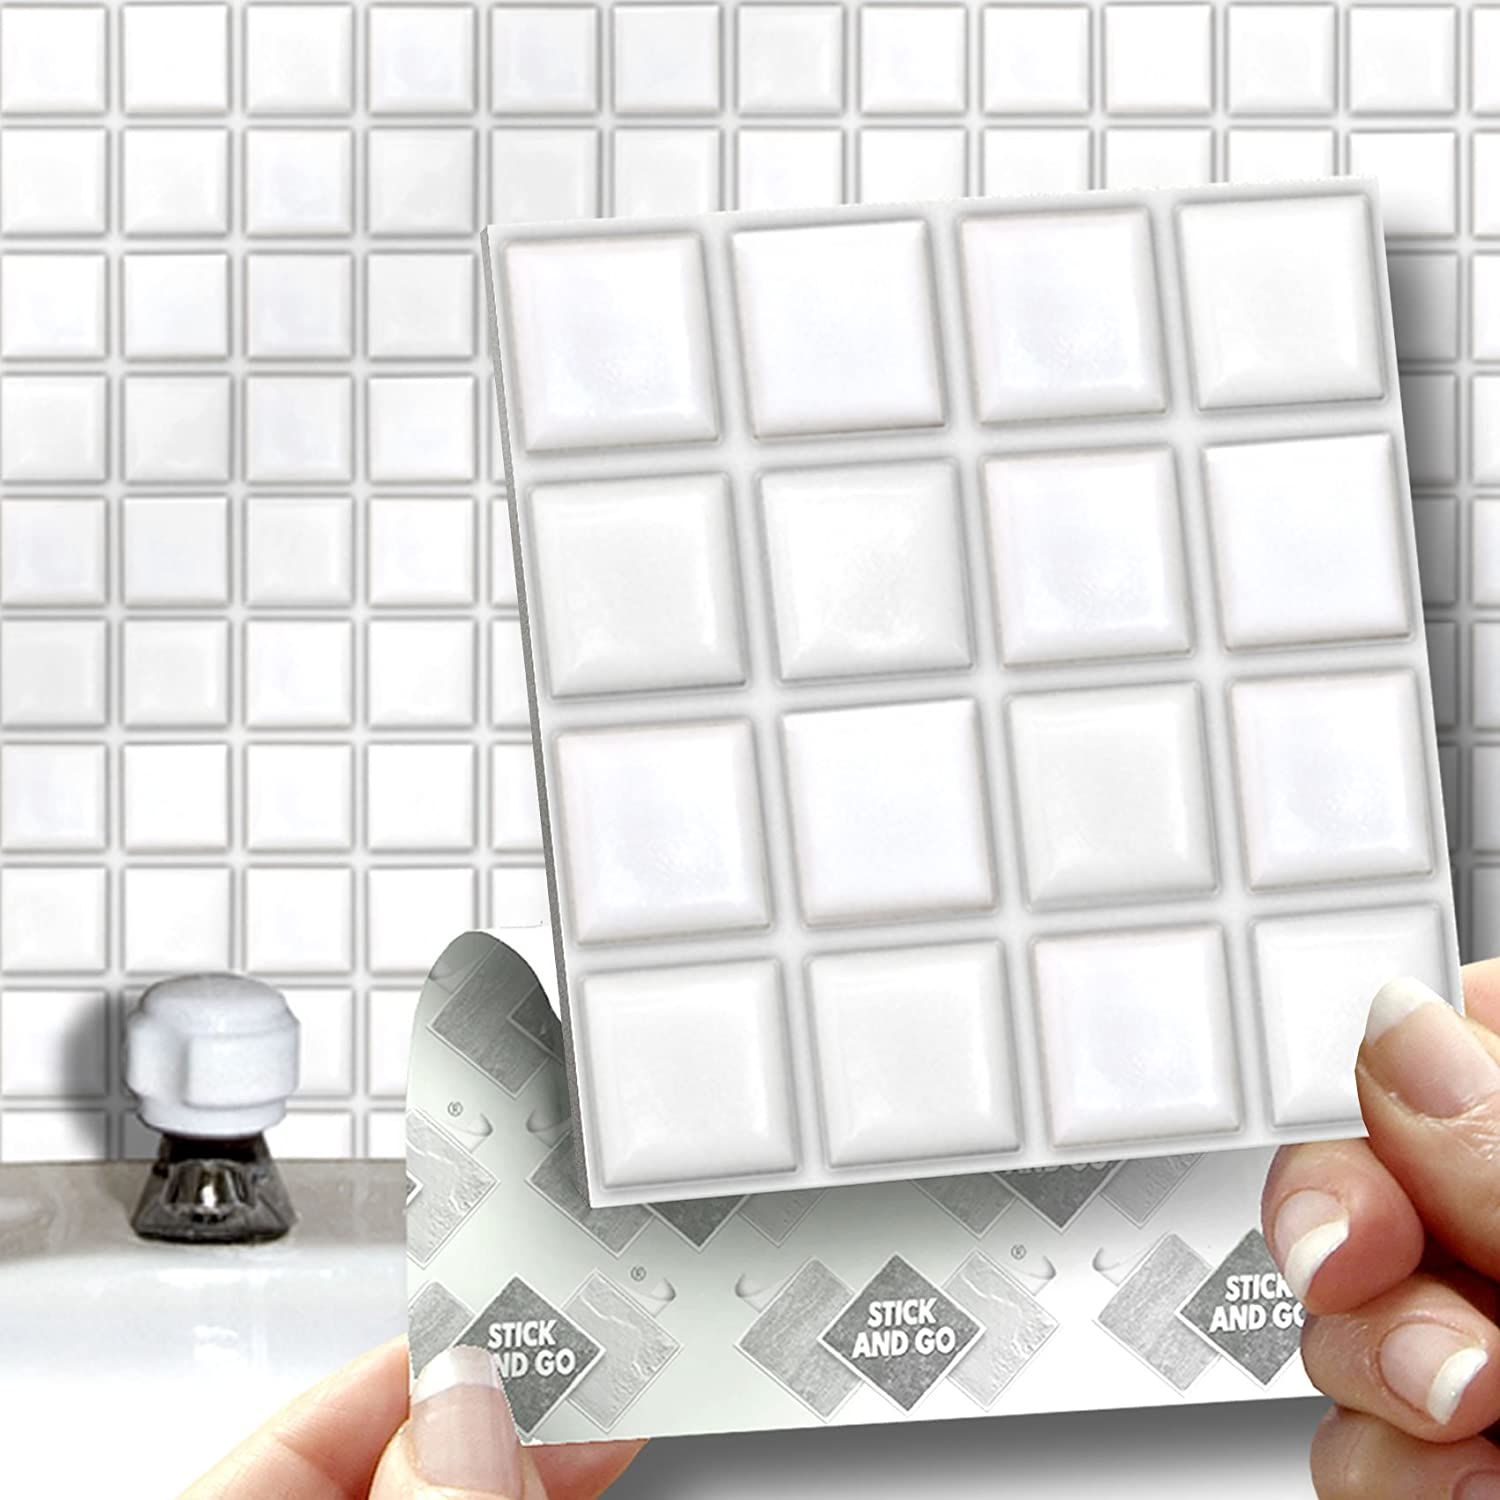 Stick on wall tiles bathroom - 18 White Mosaic Effect Wall Tiles 2mm Thick And Solid Self Adhesive Stick On Wall Tile Stickers Transfers 18 Tiles Per Box 4 X 4 10cm X 10cm No